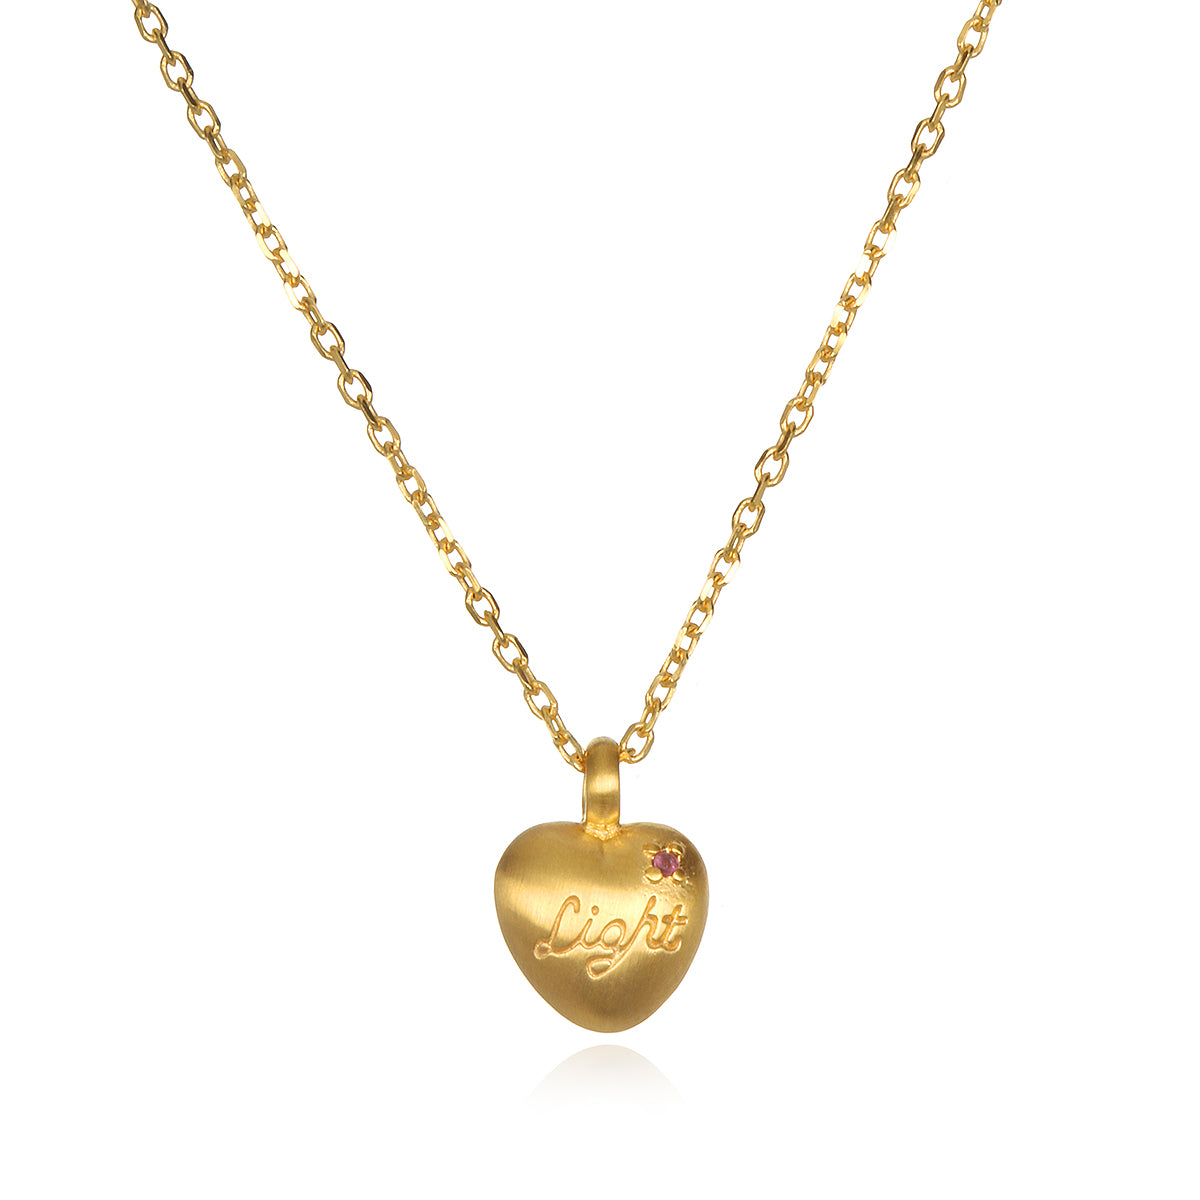 Infinite love and light heart necklace kimberly snyder infinite love and light heart necklace aloadofball Images